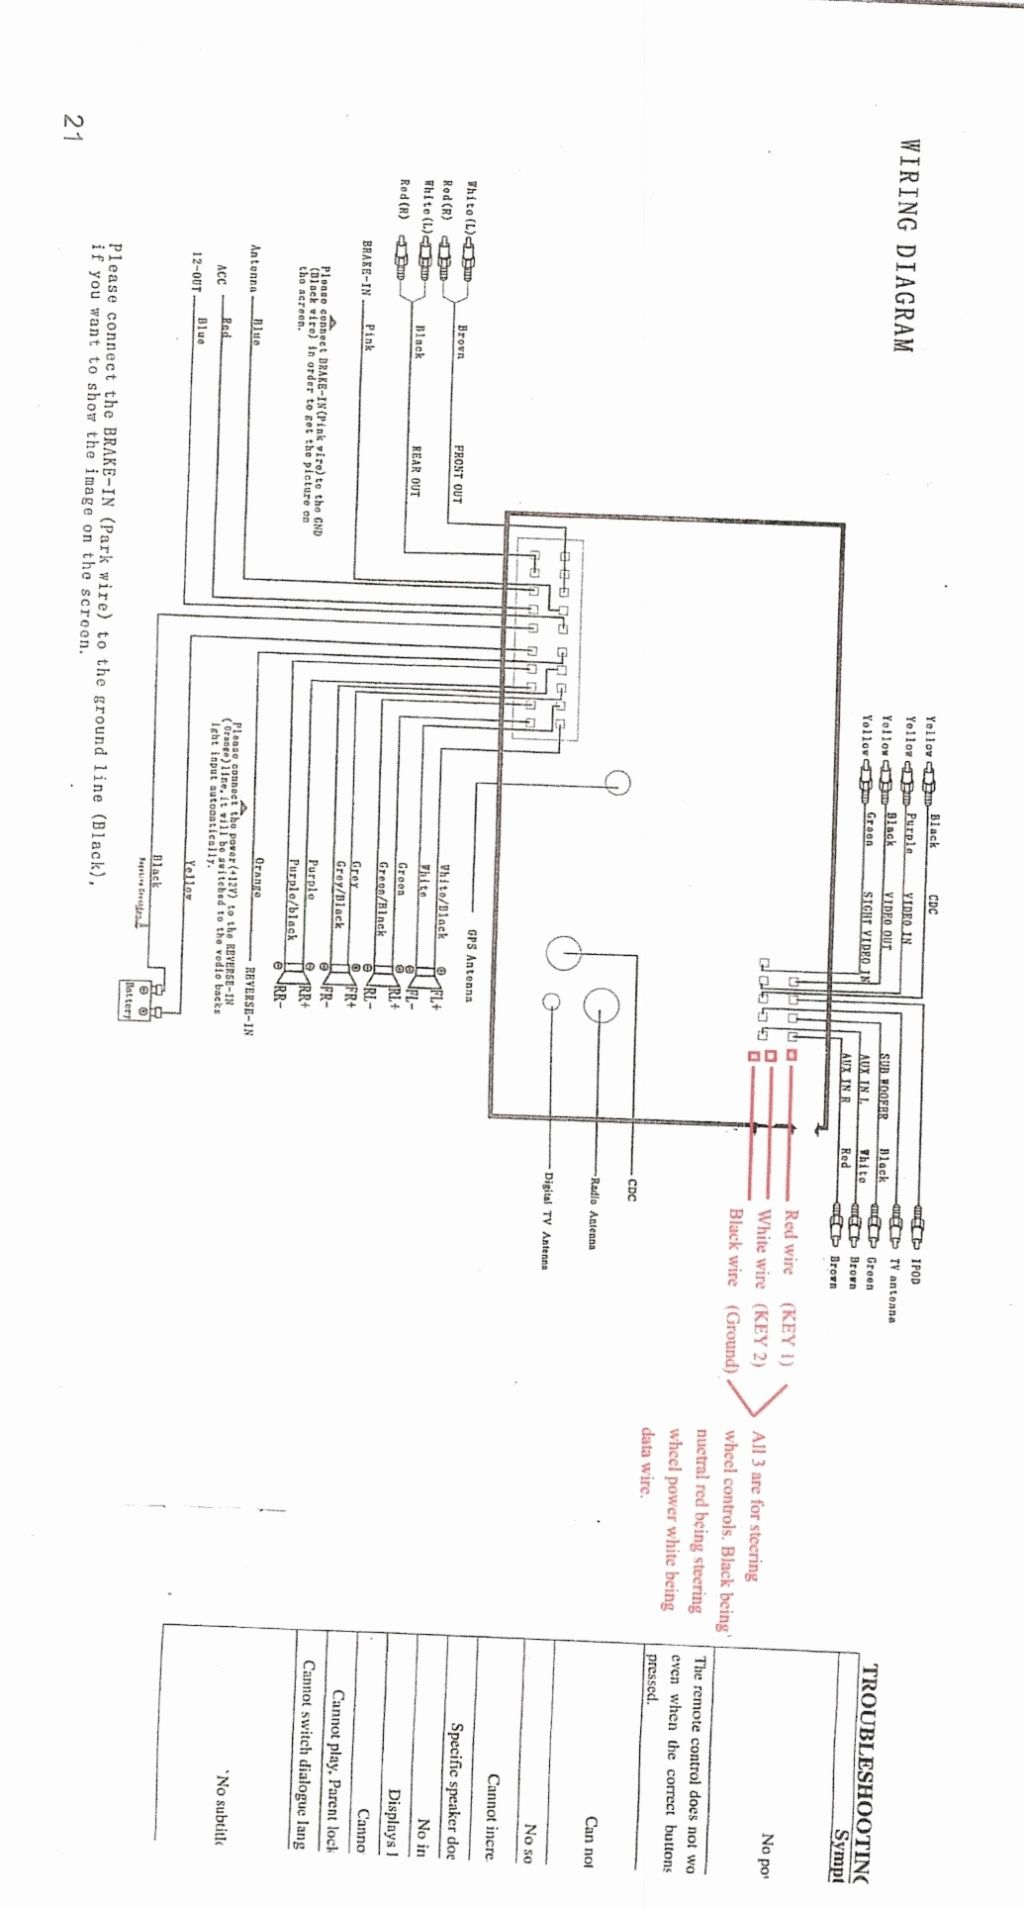 Axxess Gmos-04 Wiring Diagram from static-cdn.imageservice.cloud